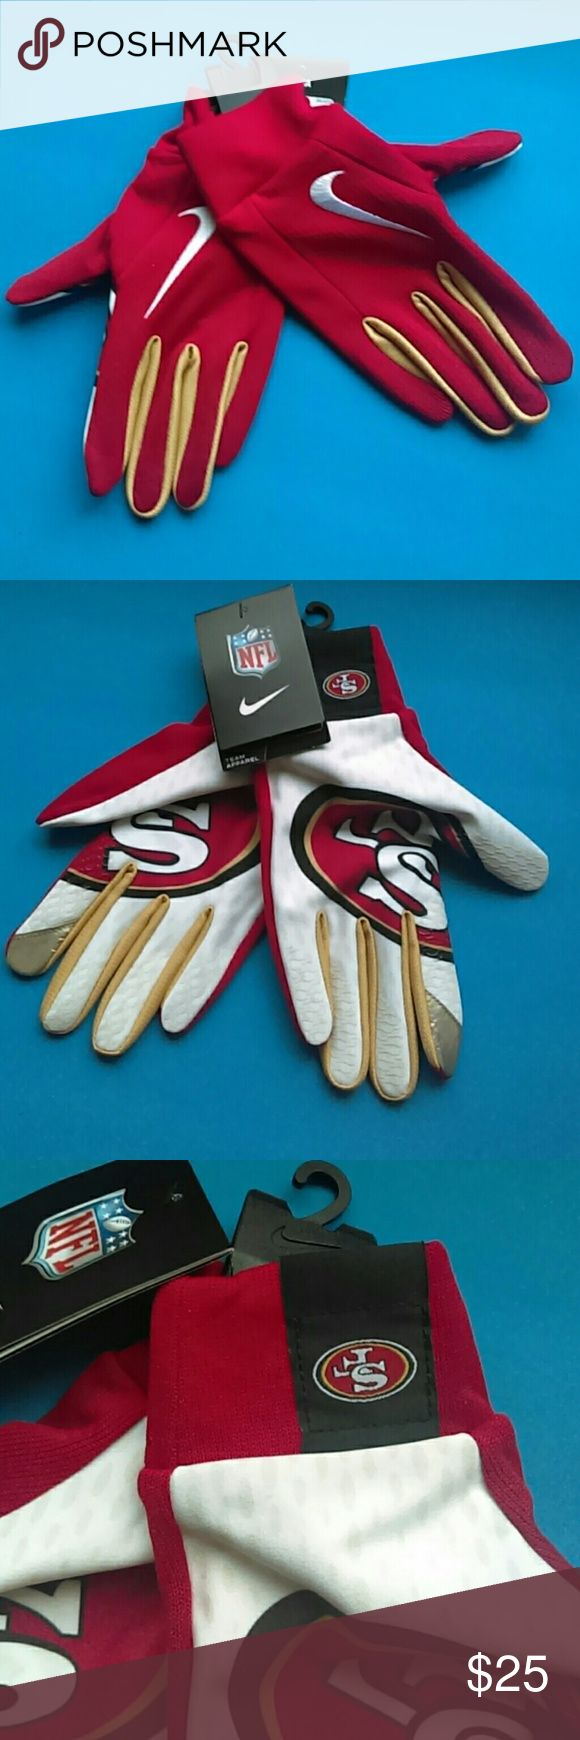 BRAND NEW NIKE  NFL  GLOVES 100% AUTHENTIC NFL GLOVES UNISEX. SIZE  :M ORIGINAL PRICE $  35 REASONABLE OFFER IS WELCOMED NIKE Accessories